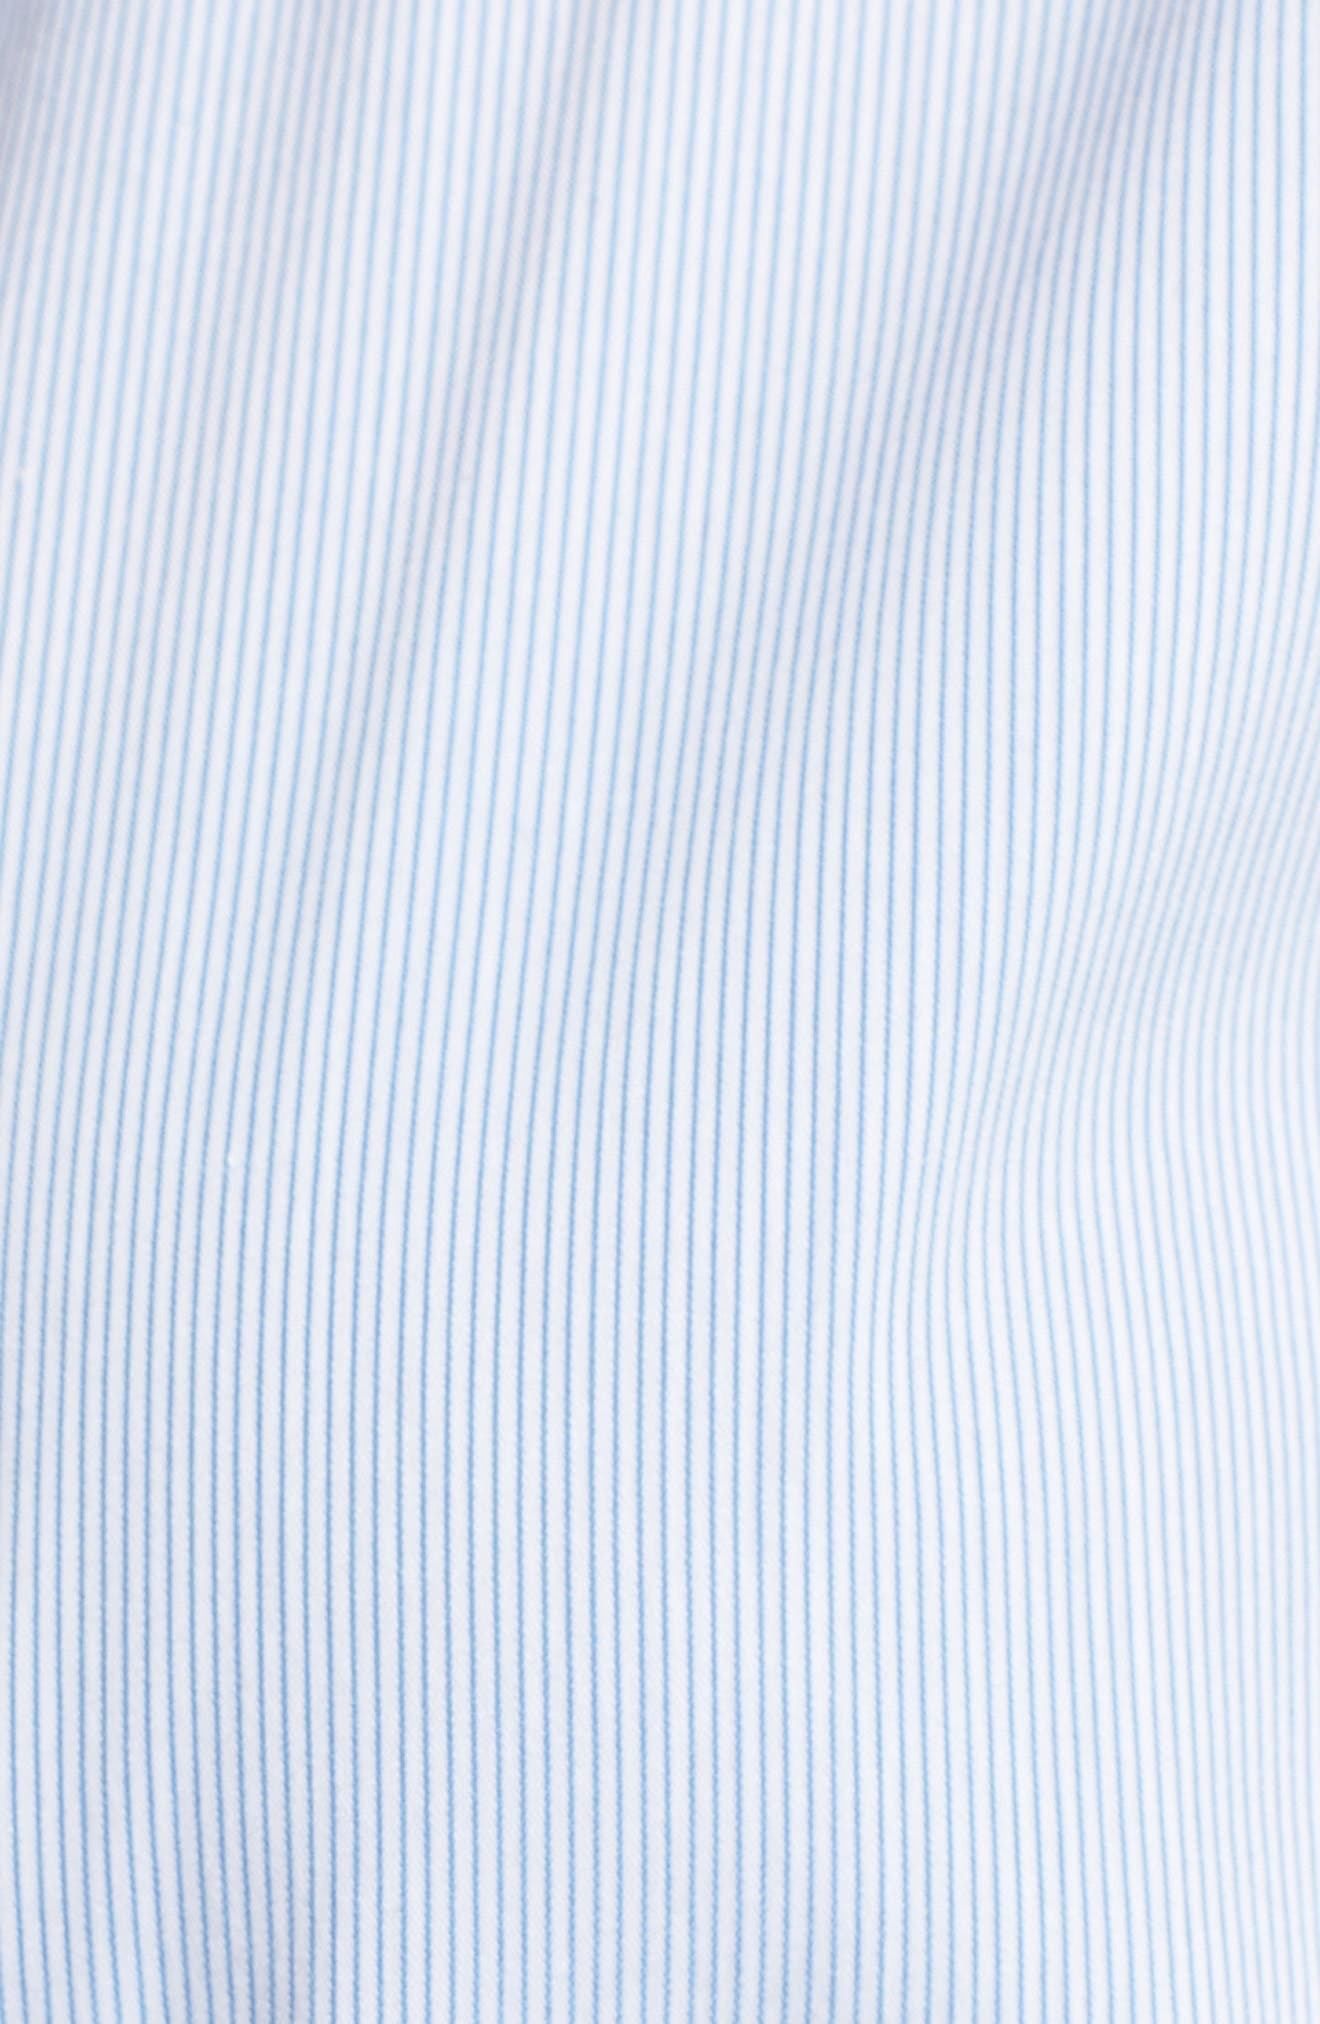 Ruched Poplin Top,                             Alternate thumbnail 6, color,                             Blue/ White Pinstripe